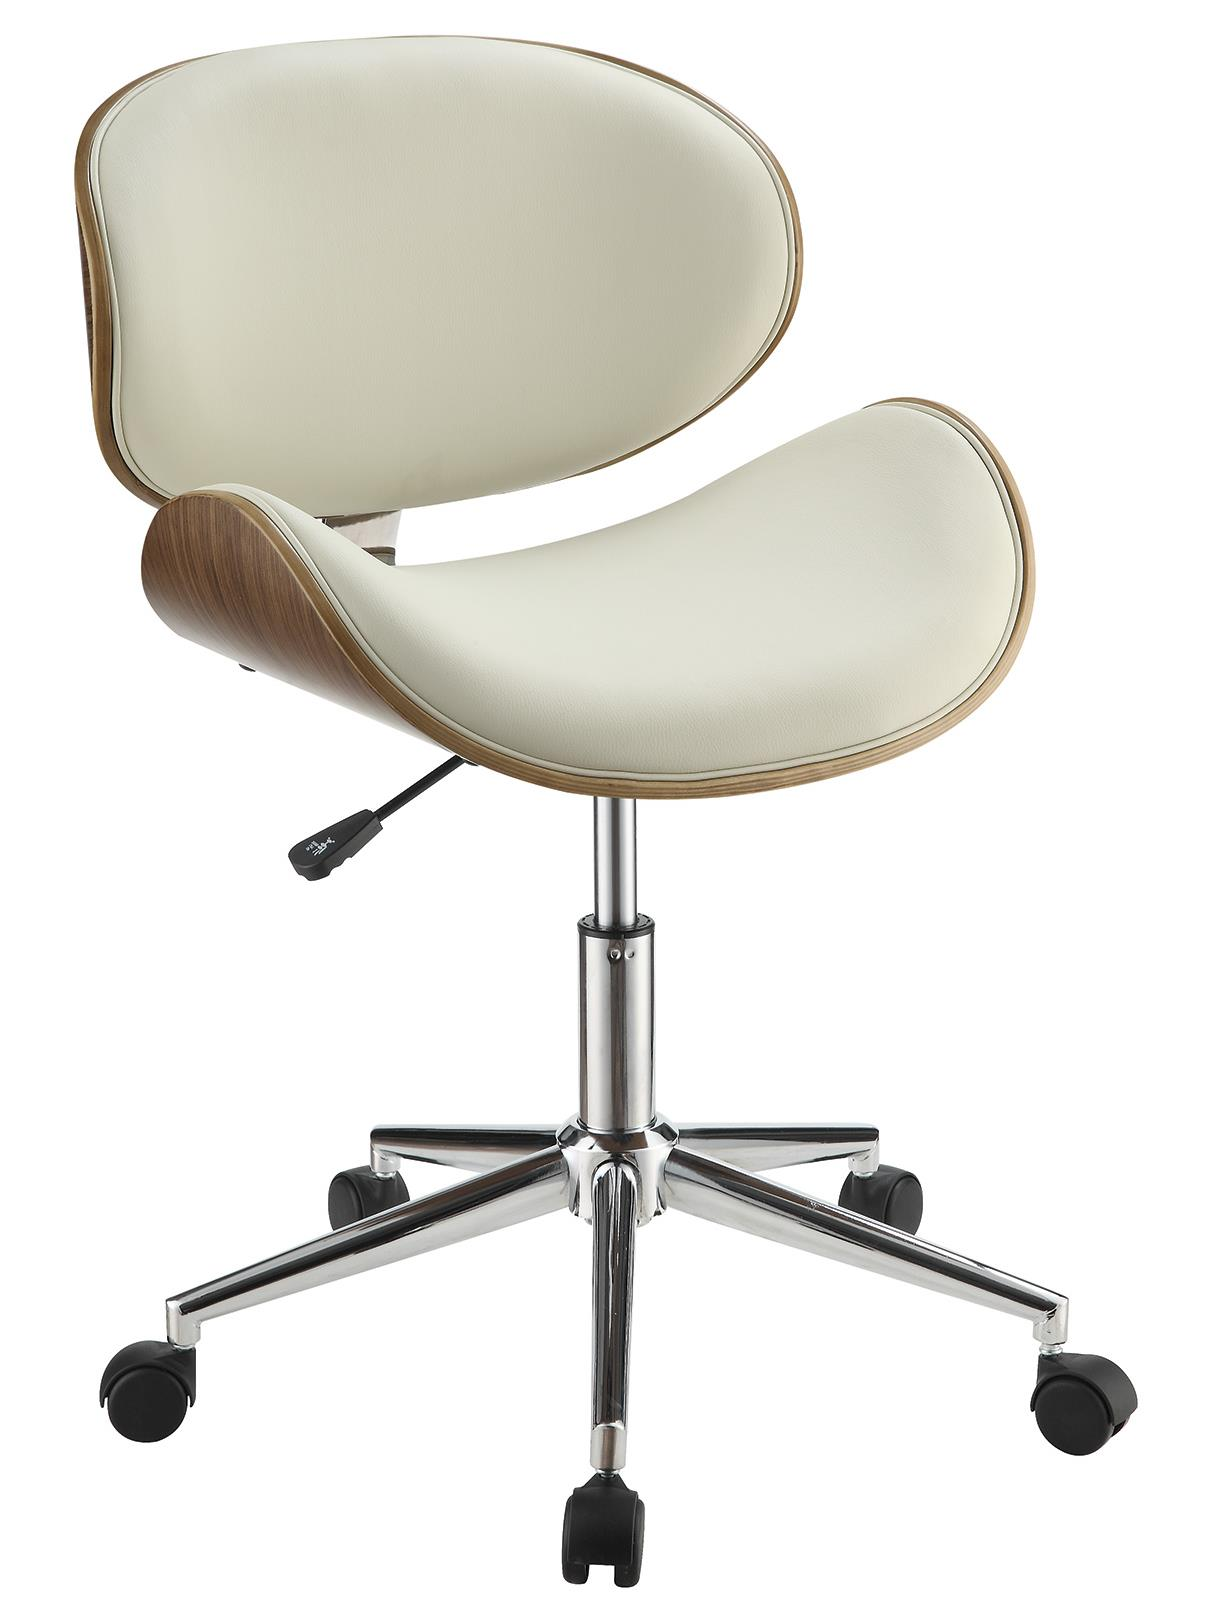 Coaster Office Chairs Office Chair - Item Number: 800615